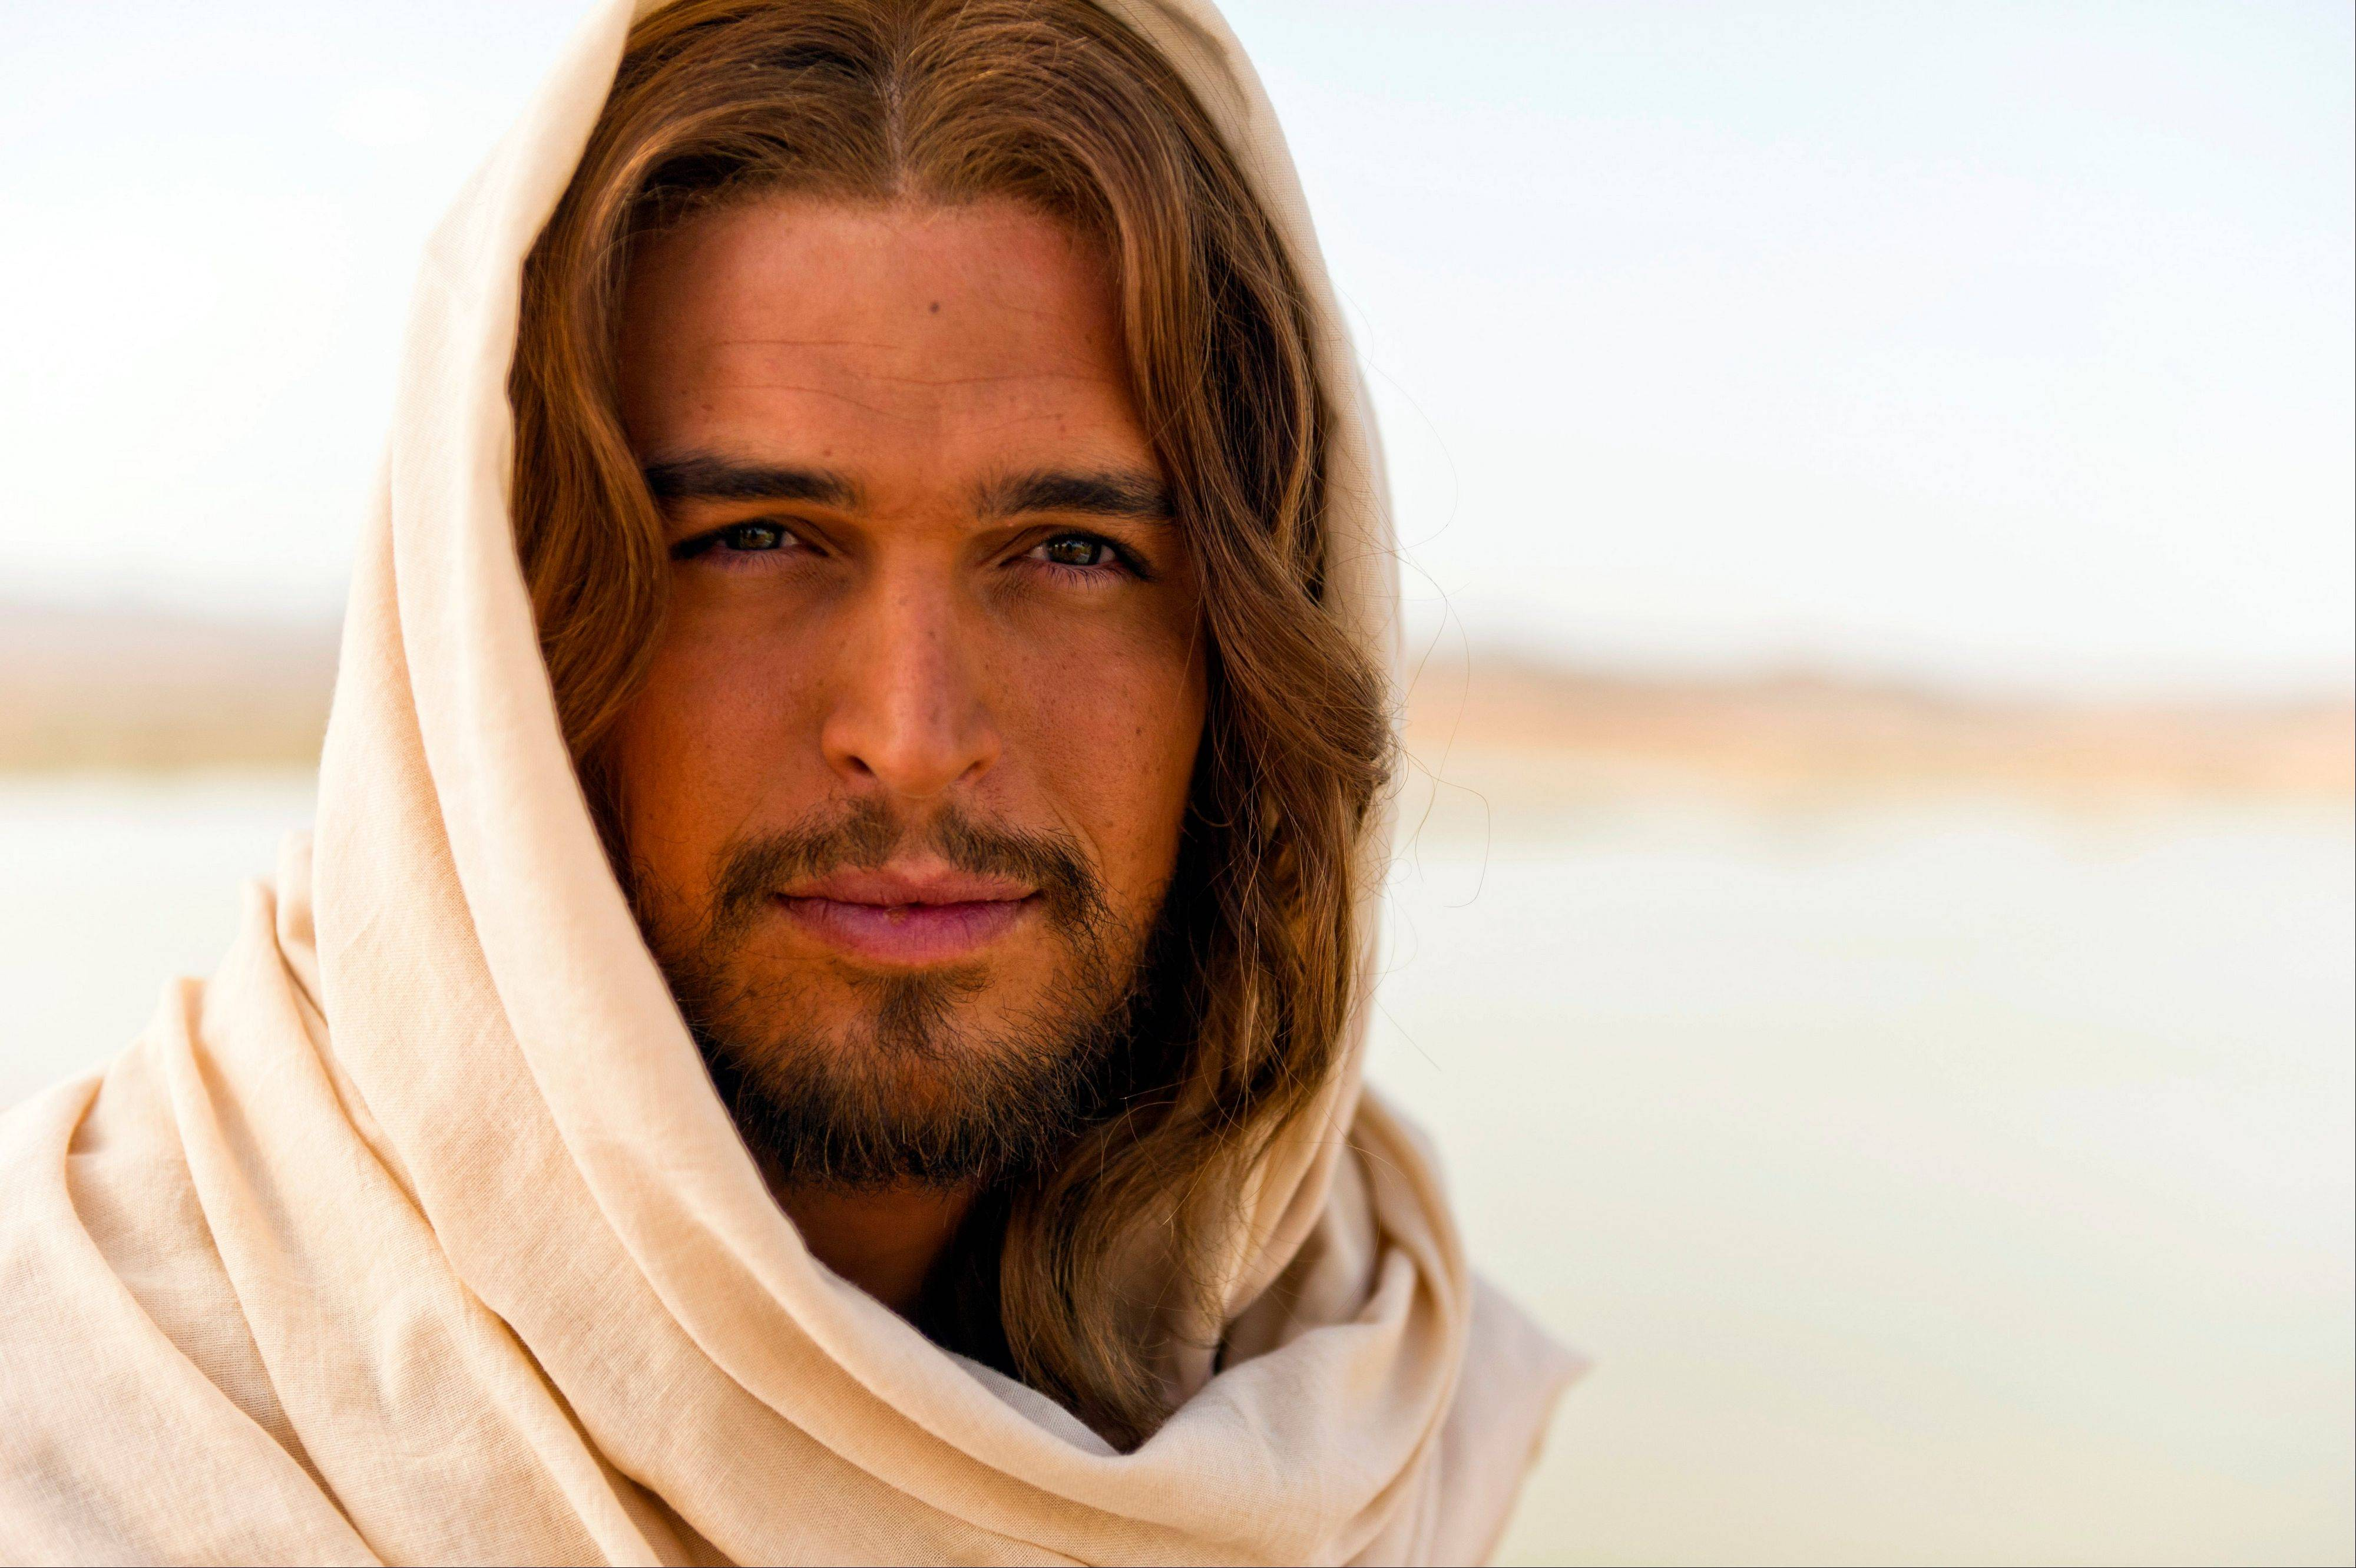 Diogo Morgado plays Jesus in the film �The Bible. A 16-city music tour begins next March following the nationwide theatrical release of �The Bible� companion film �Son of God.�